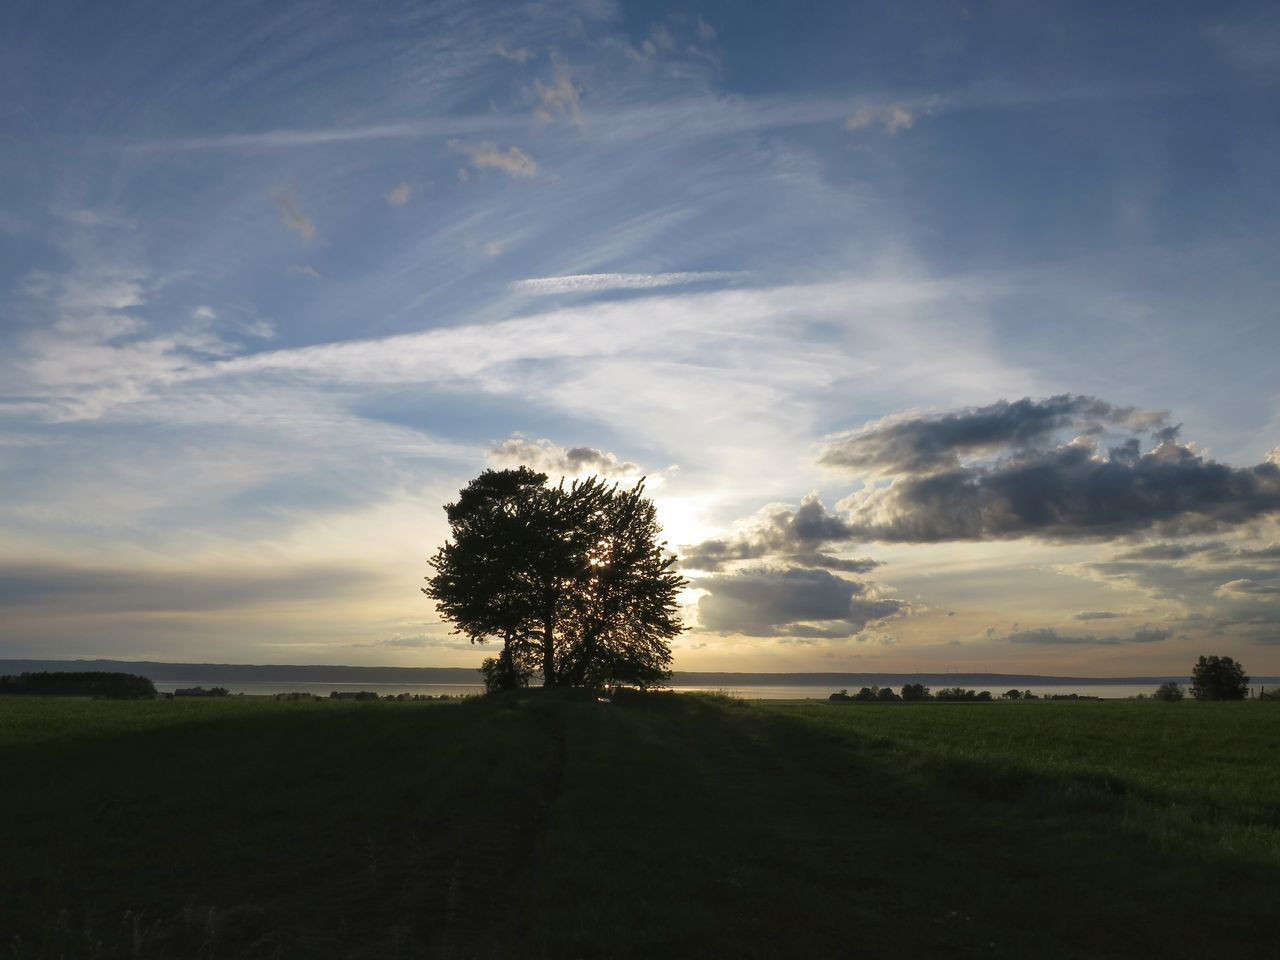 landscape, tranquility, tranquil scene, tree, nature, sky, beauty in nature, scenics, field, cloud - sky, solitude, sunset, grass, lone, no people, outdoors, silhouette, day